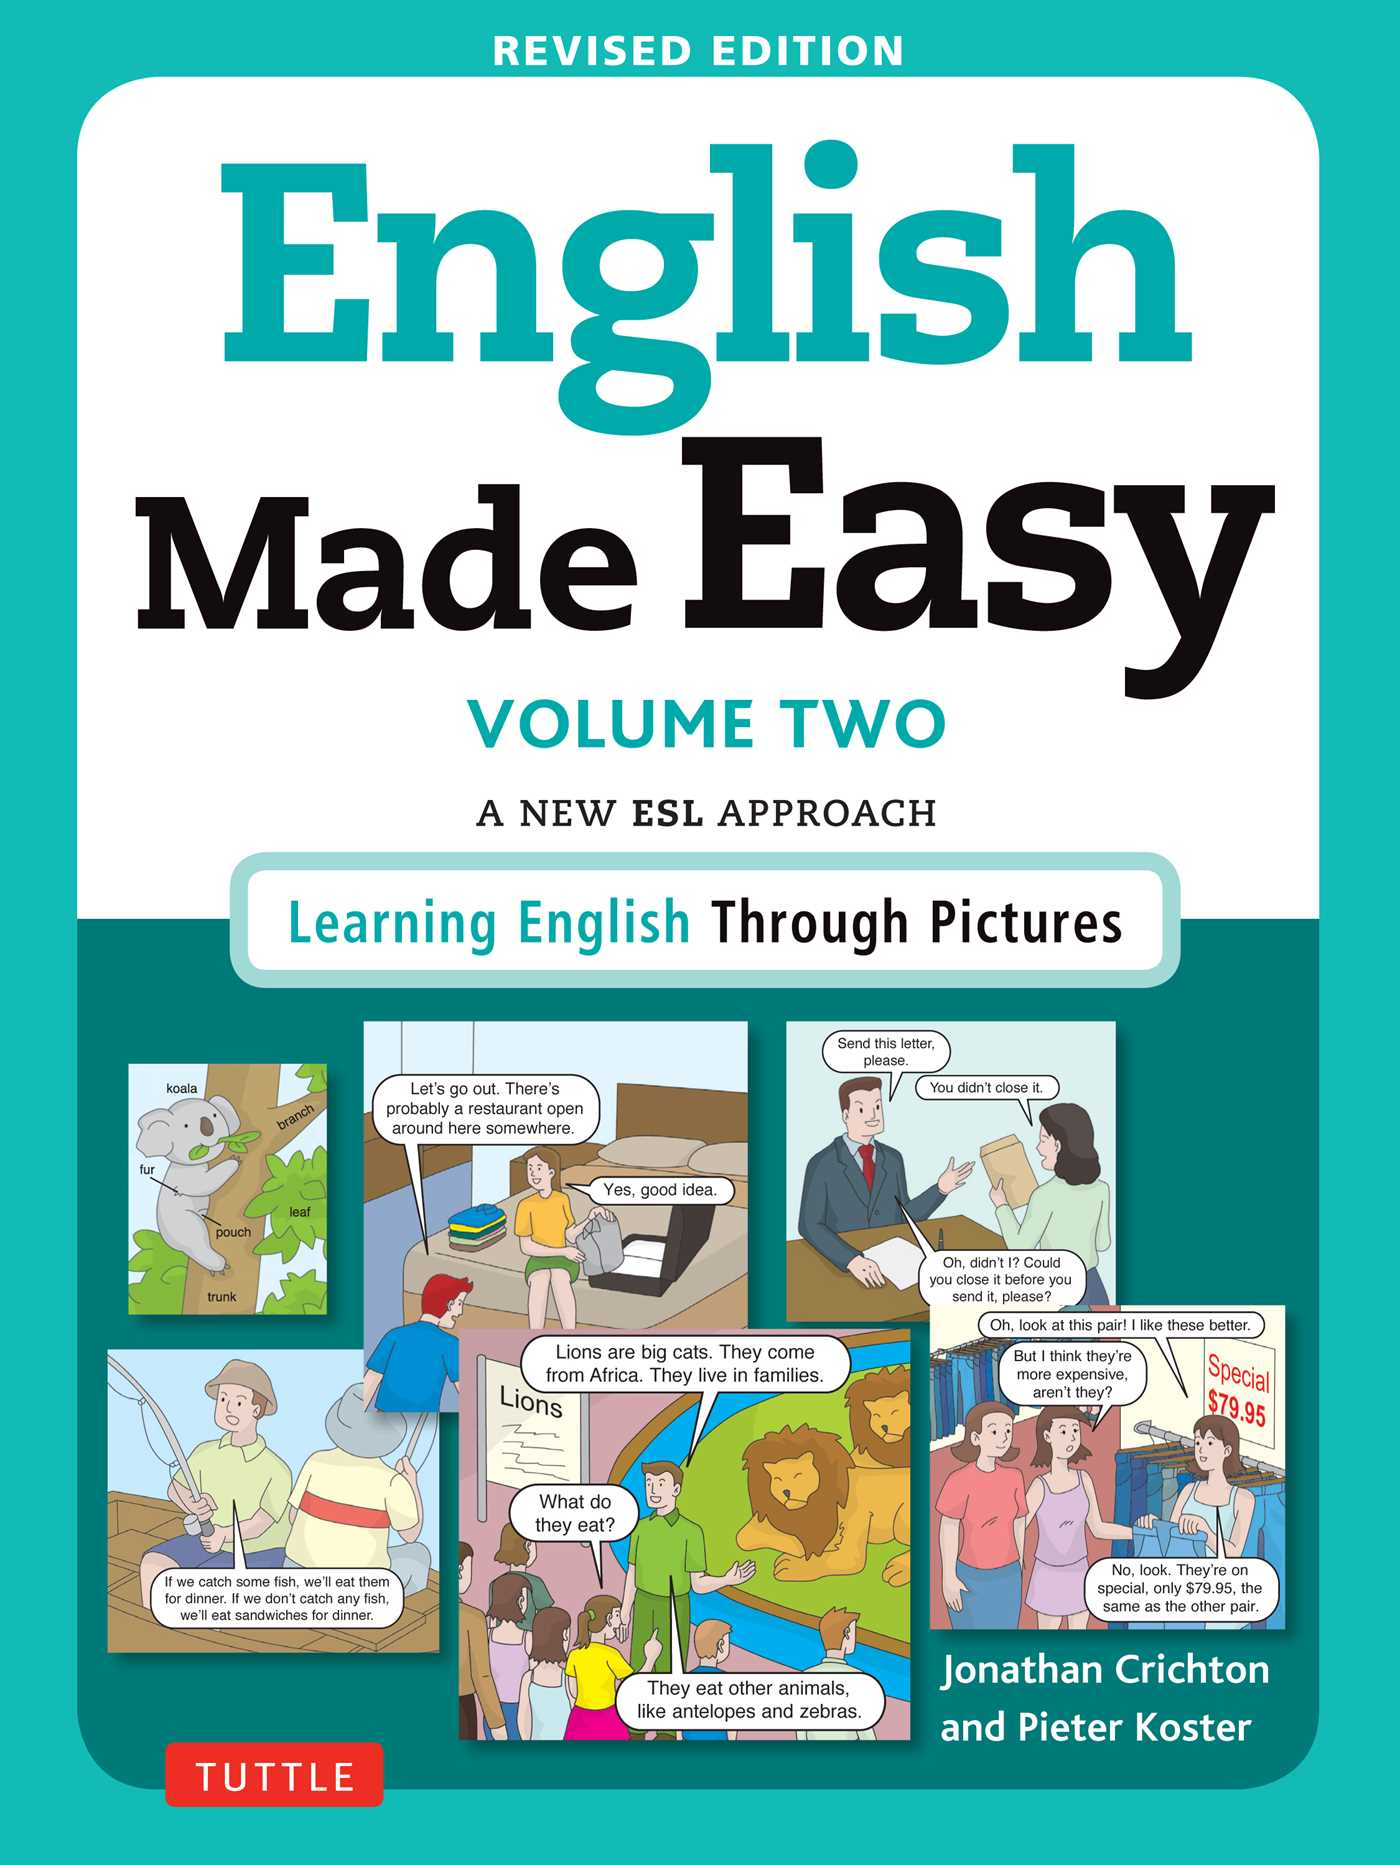 English made easy volume two 9780804845250 hr